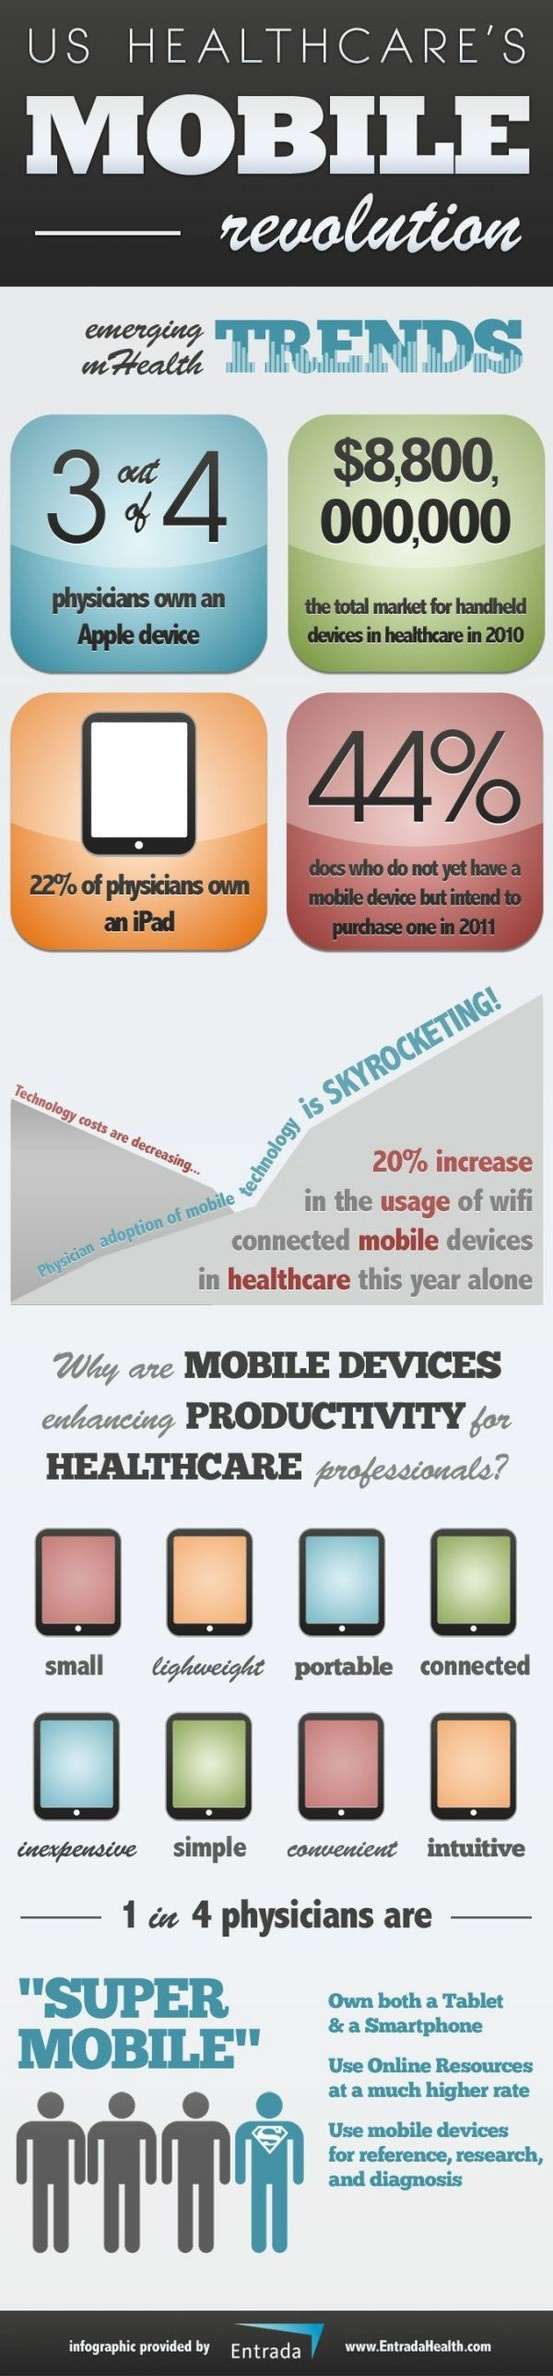 "Is your #physician ""super mobile""? 1 in 4 docs own a tablet + smartphone #hcsm #hcmktg"